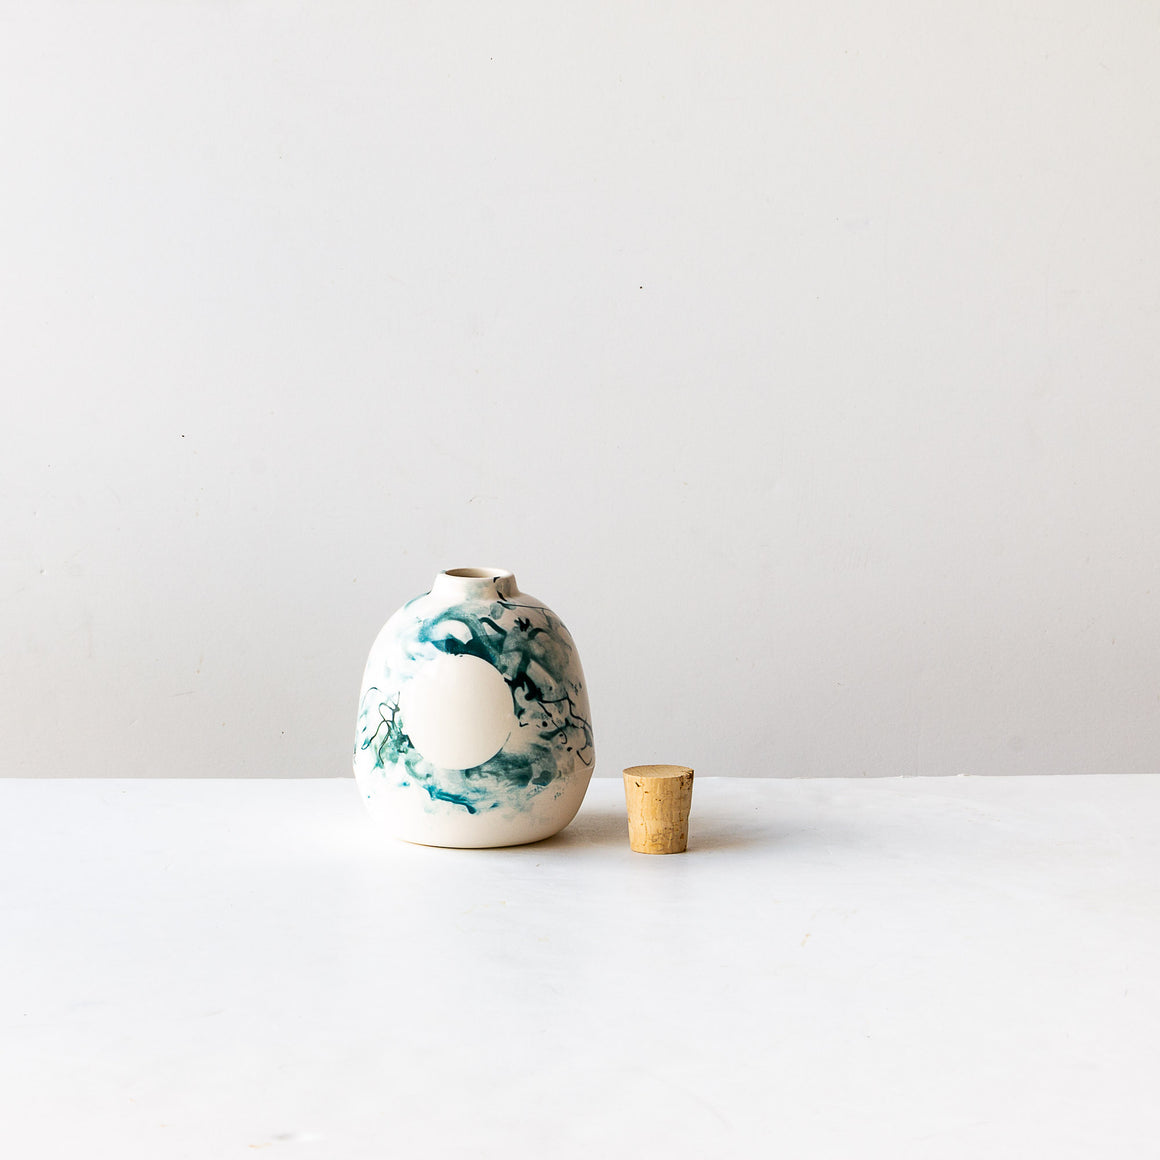 Flowers with Handmade Mini Porcelain Vase With Cork - Sold by Chic & Basta